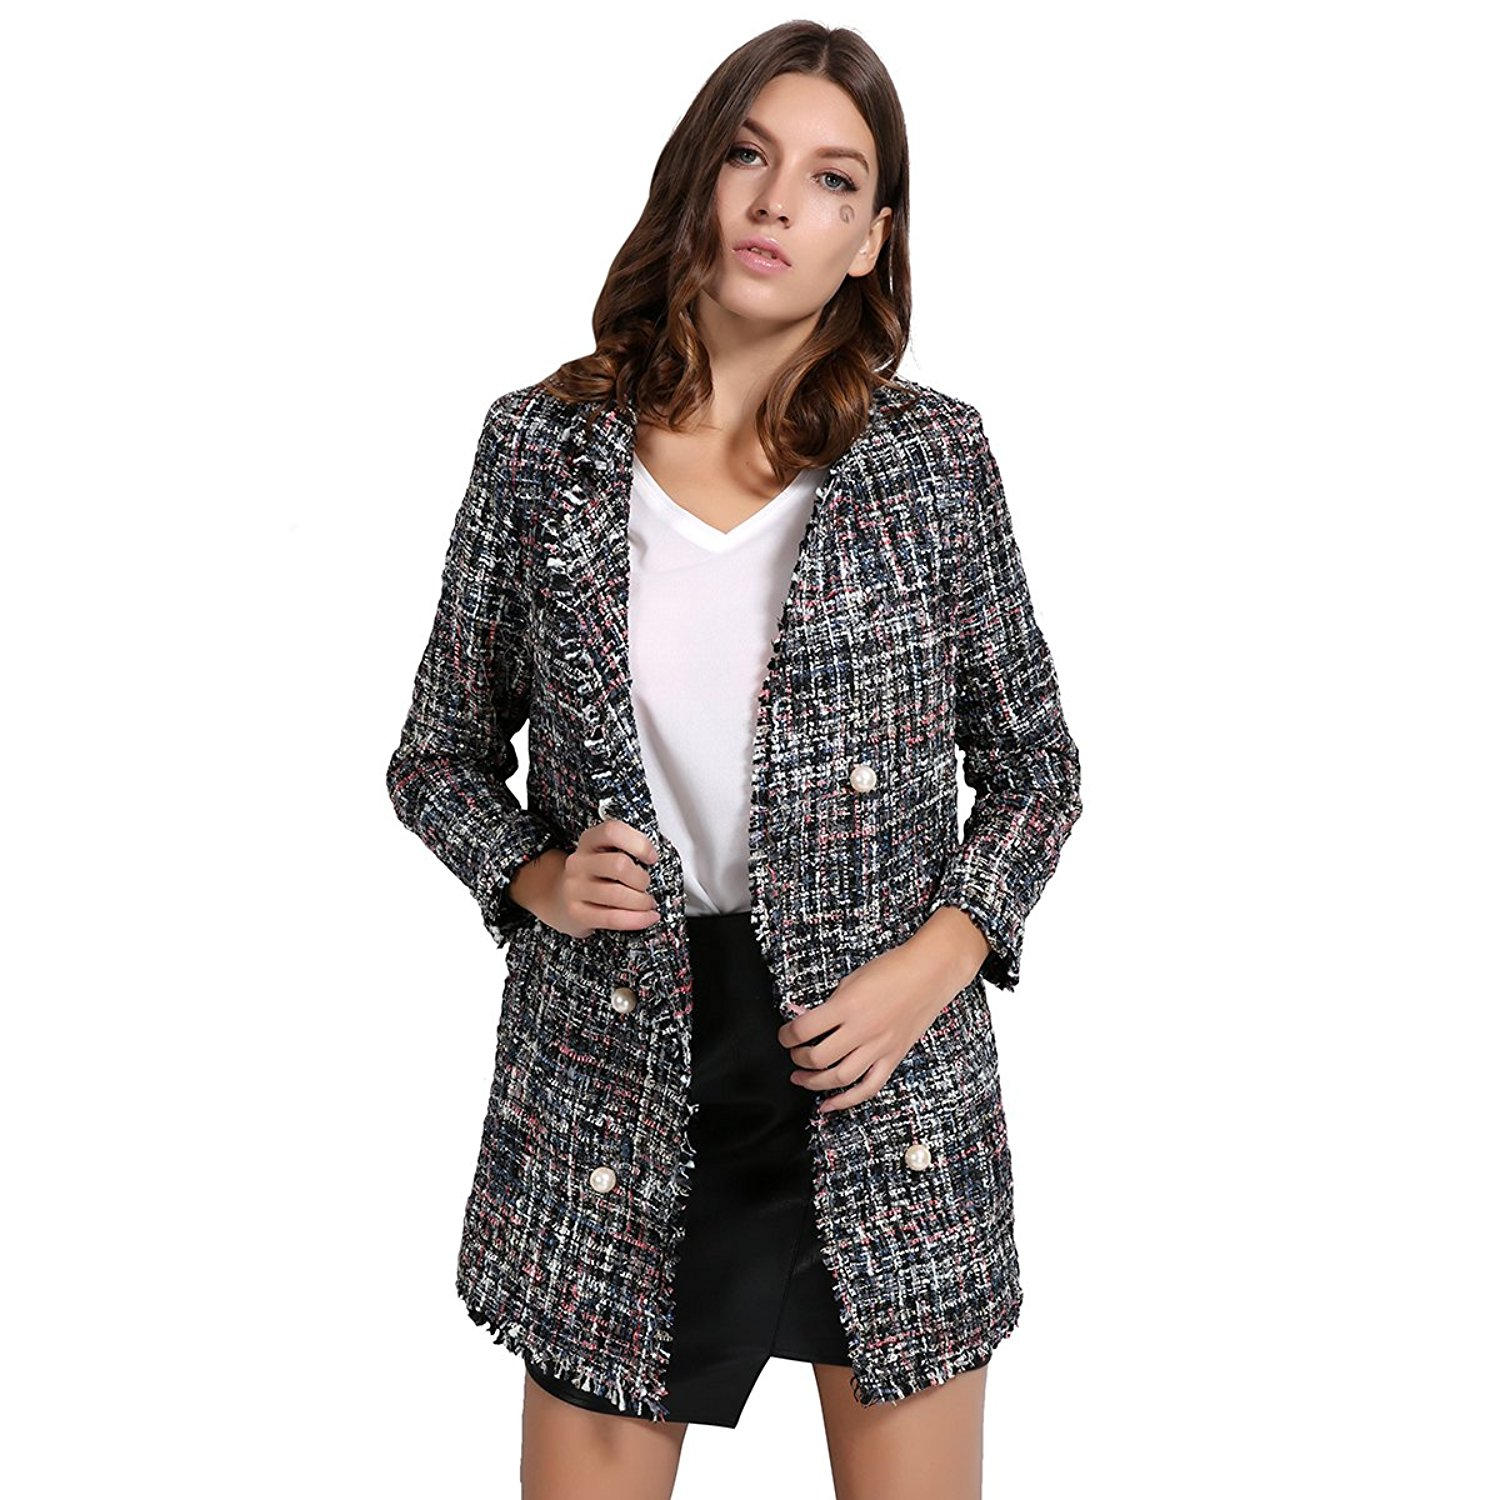 0e3c7b0f949 Get Quotations · GCAROL Women s Open Front Tweed Blazer Jackets Coats